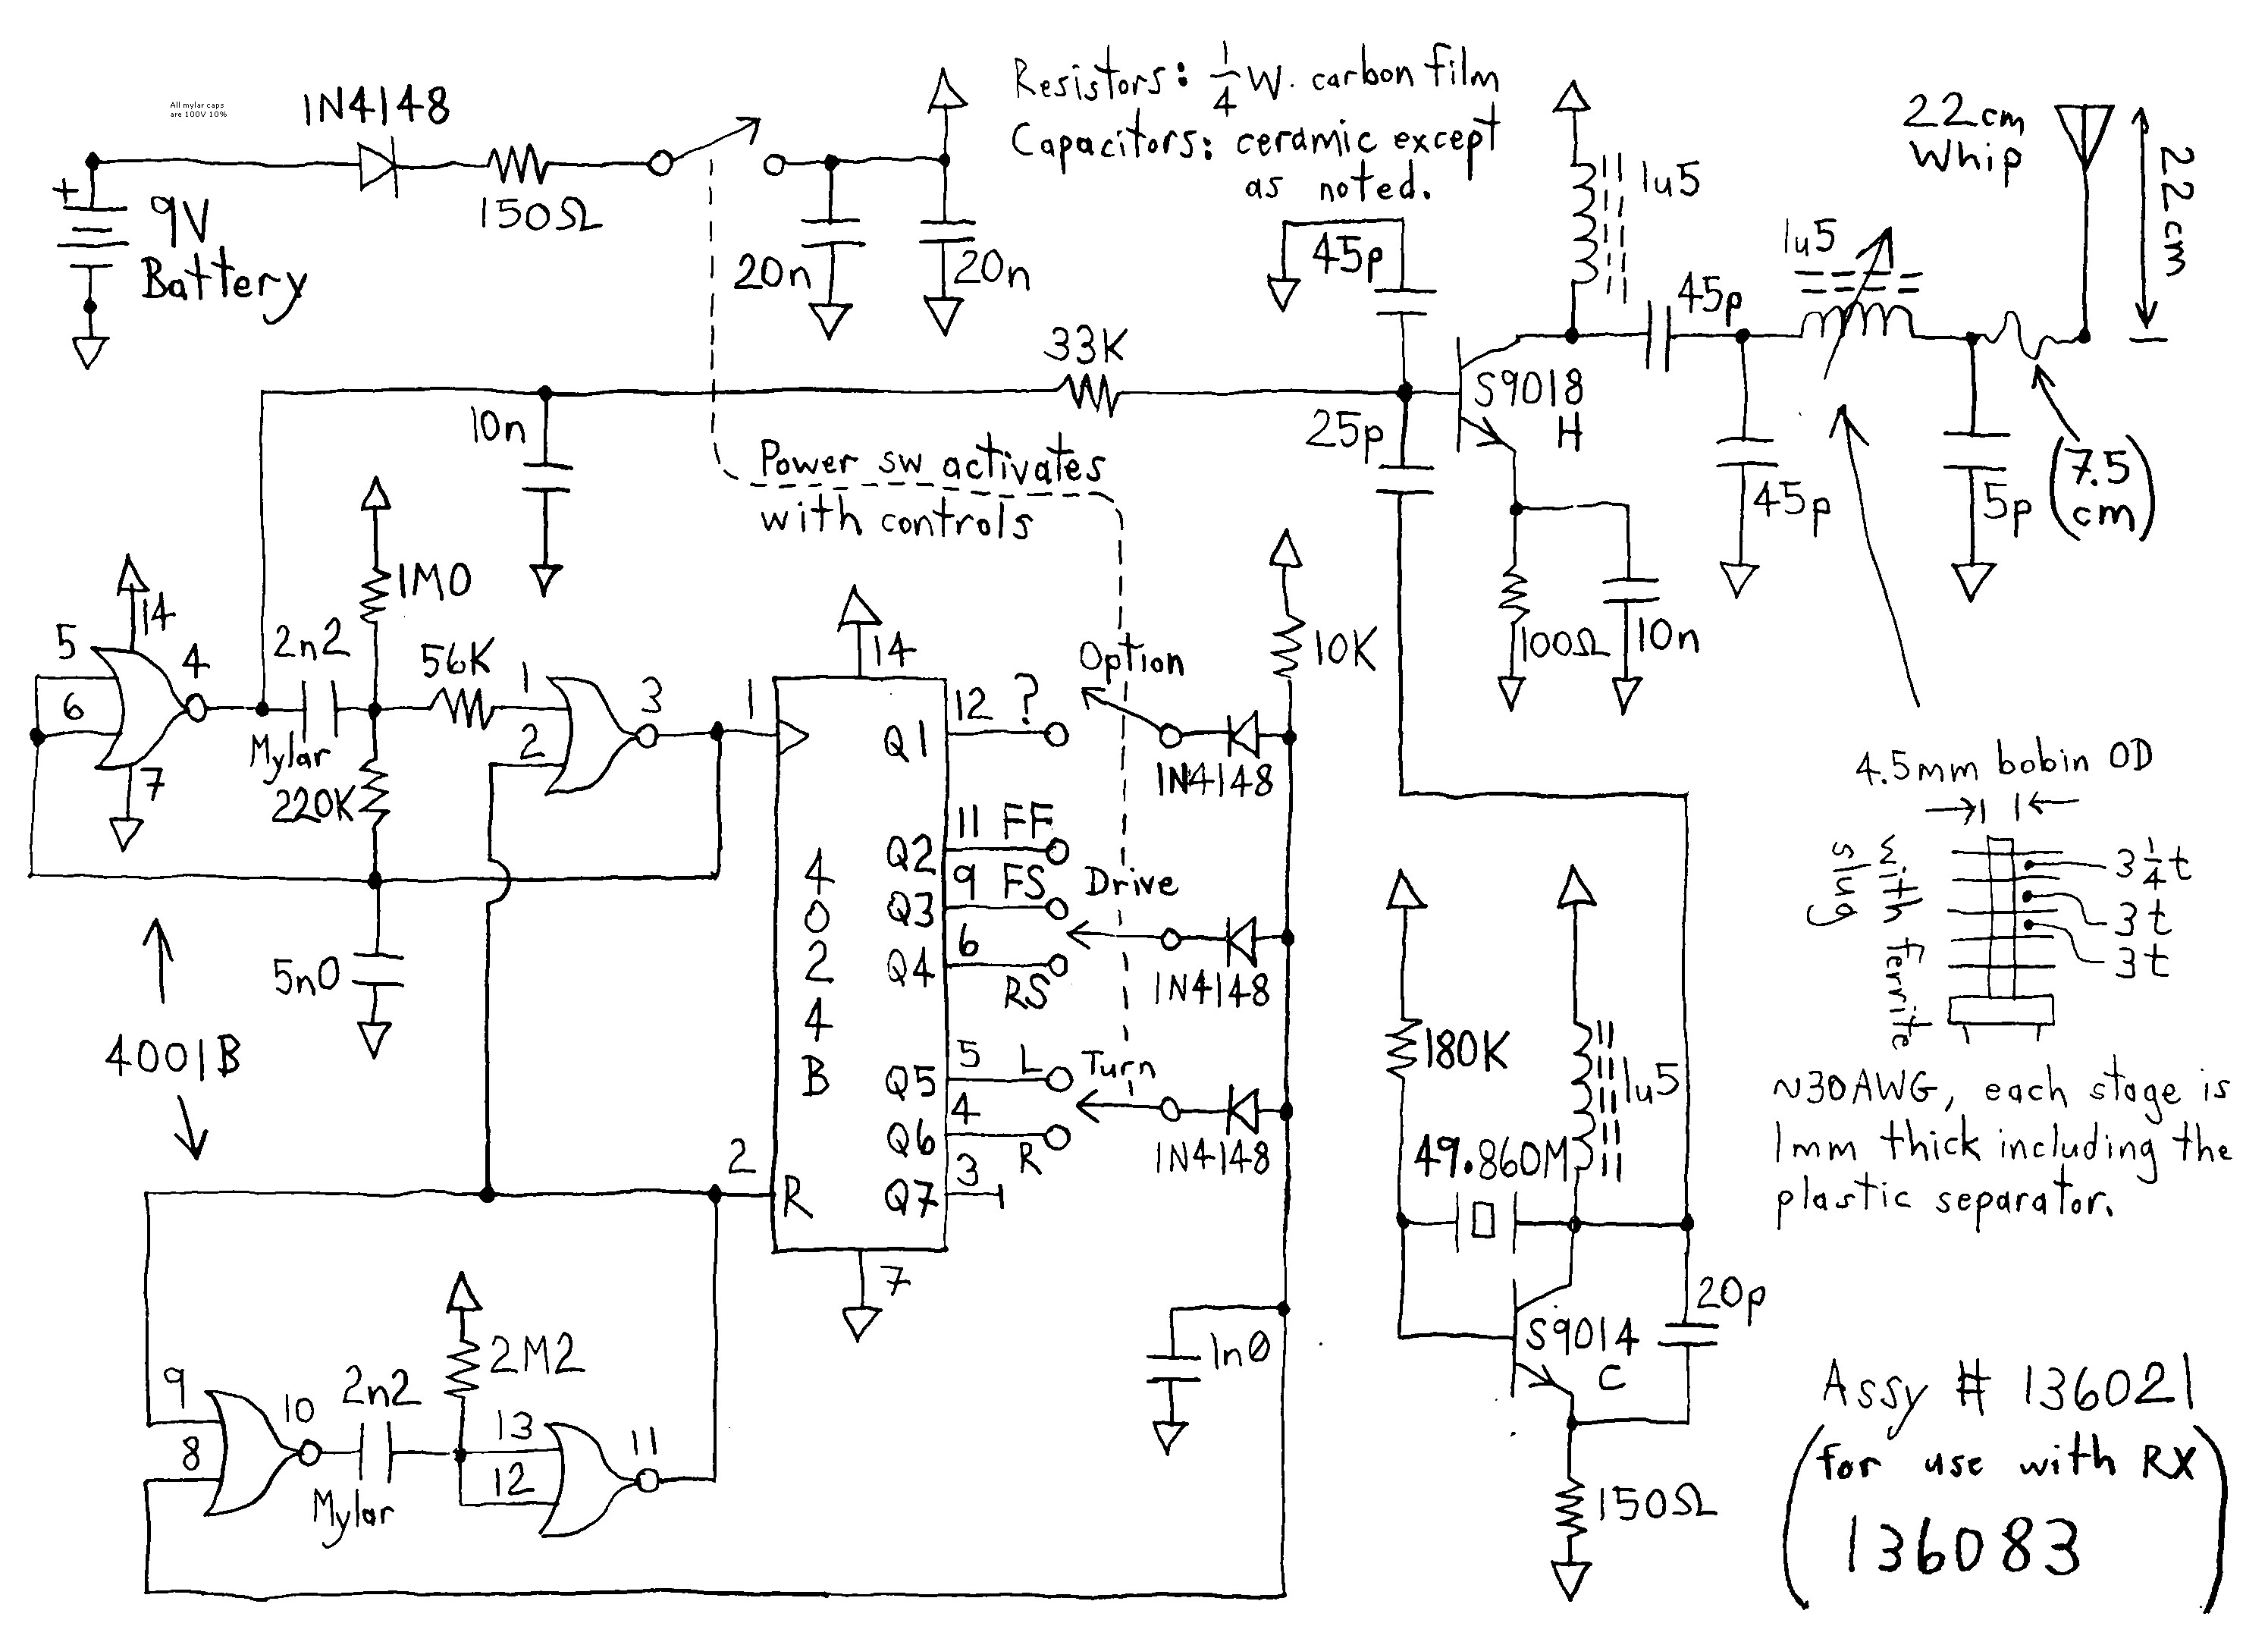 fbp 1 40x wiring diagram Download-fbp 1 40x wiring diagram fbp 1 40x wiring diagram inspirational learn ap physics c circuits of fbp 1 40x wiring diagram 8-o